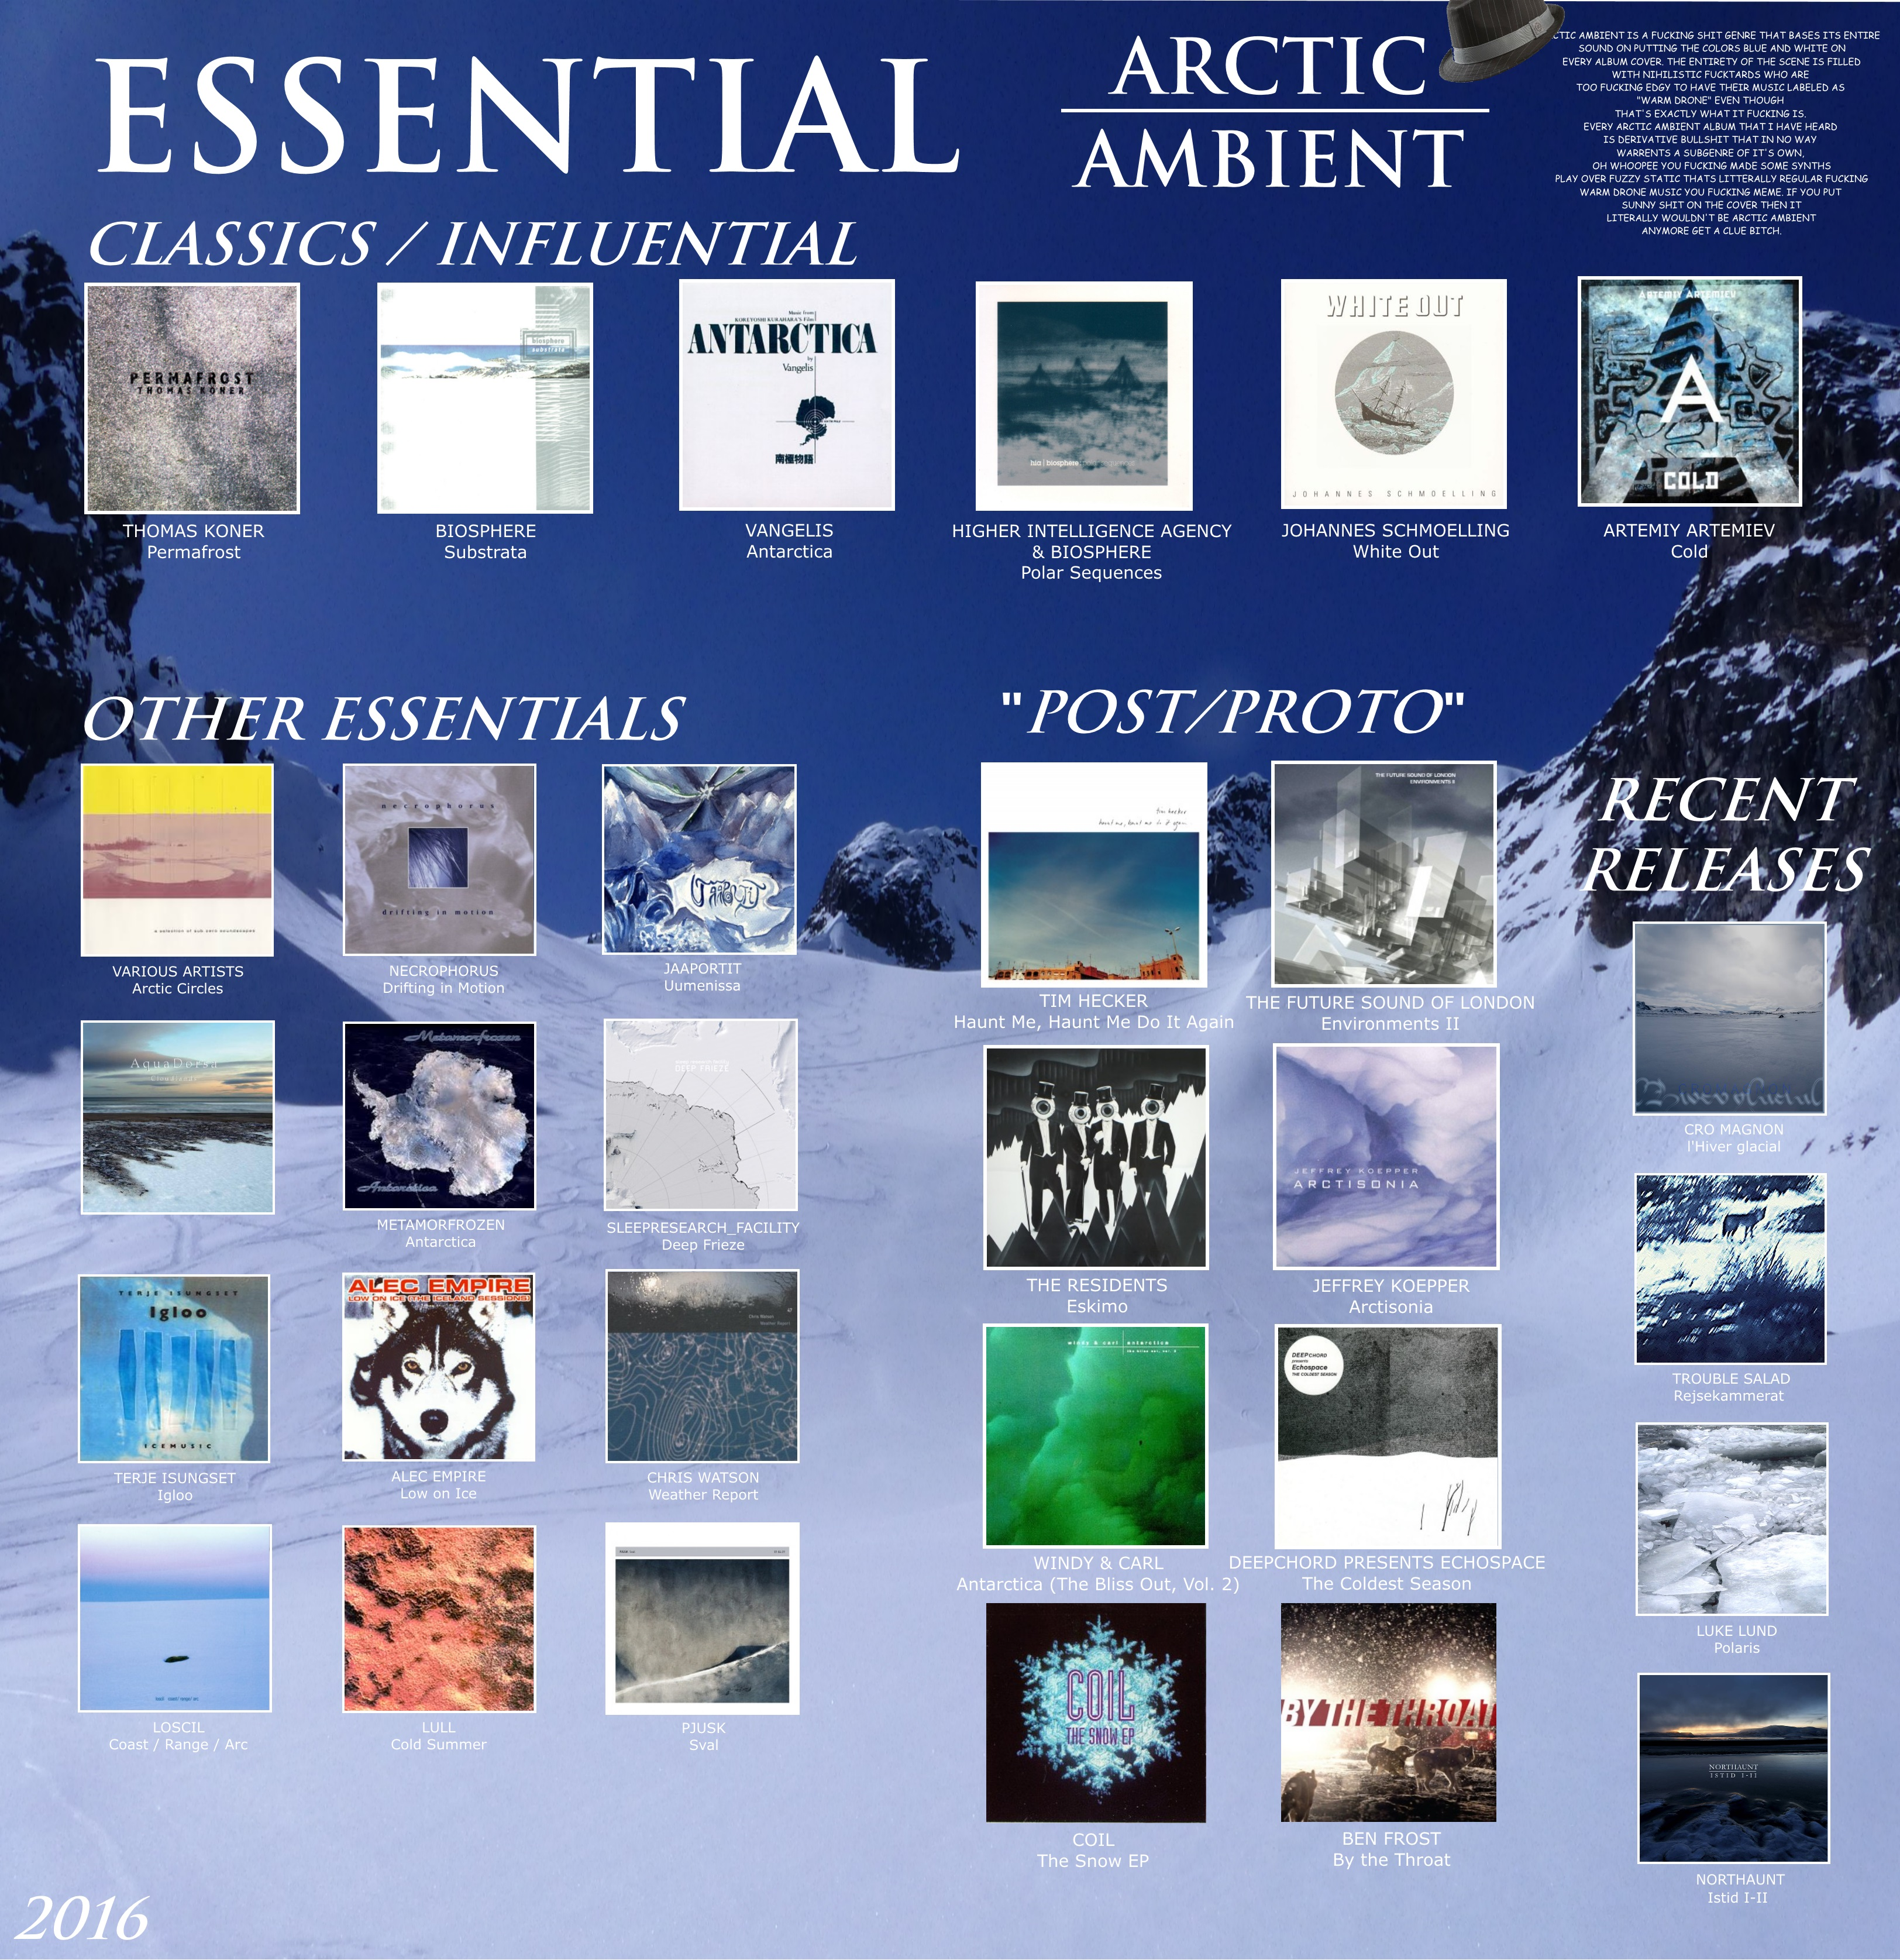 RYM Ultimate Box Set > Arctic Ambient - Rate Your Music